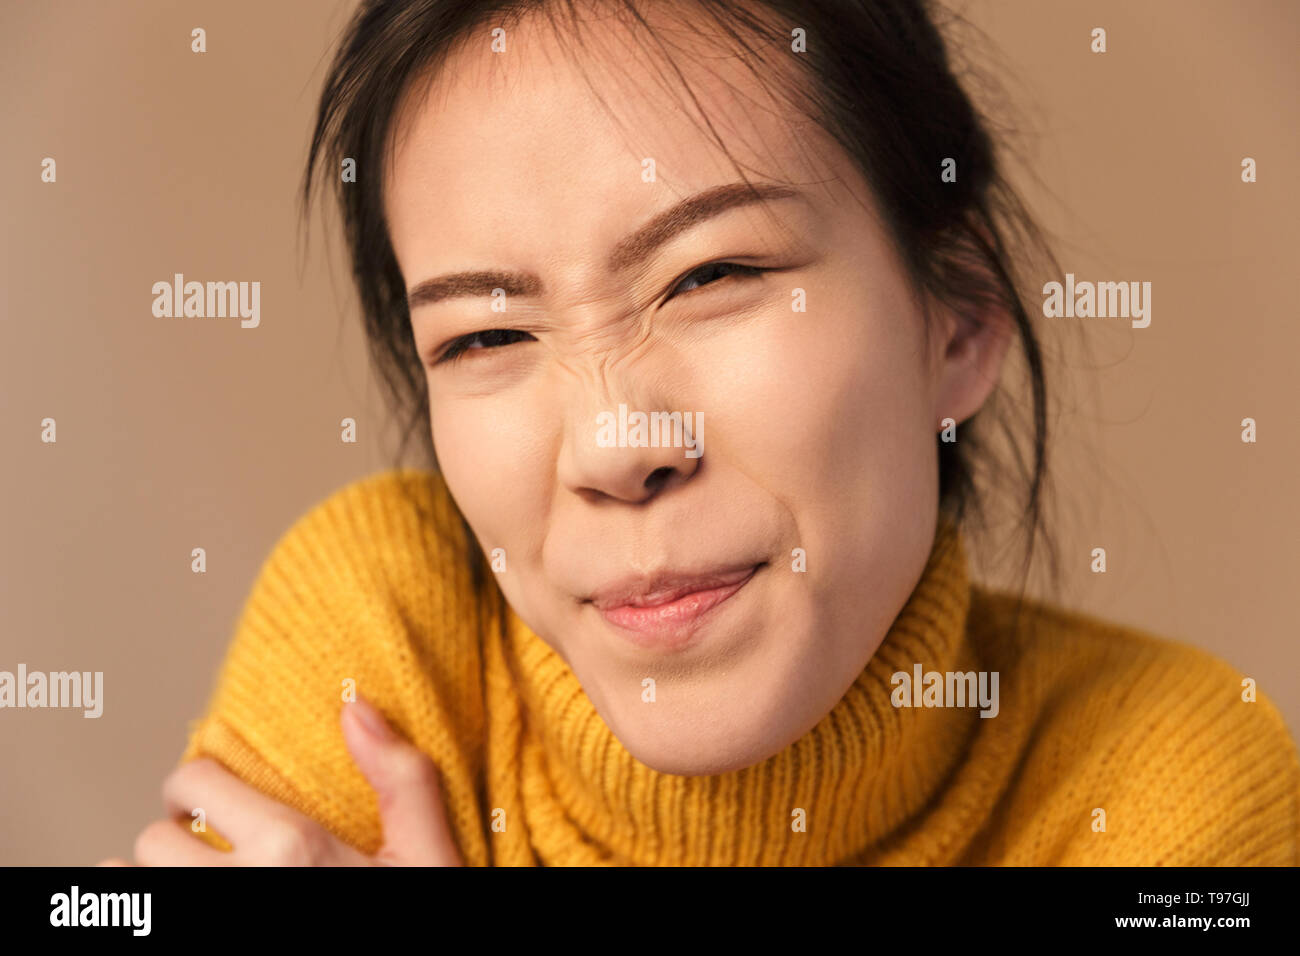 Image closeup of funny asian woman wearing sweater grimacing while posing at camera in studio isolated over beige background - Stock Image